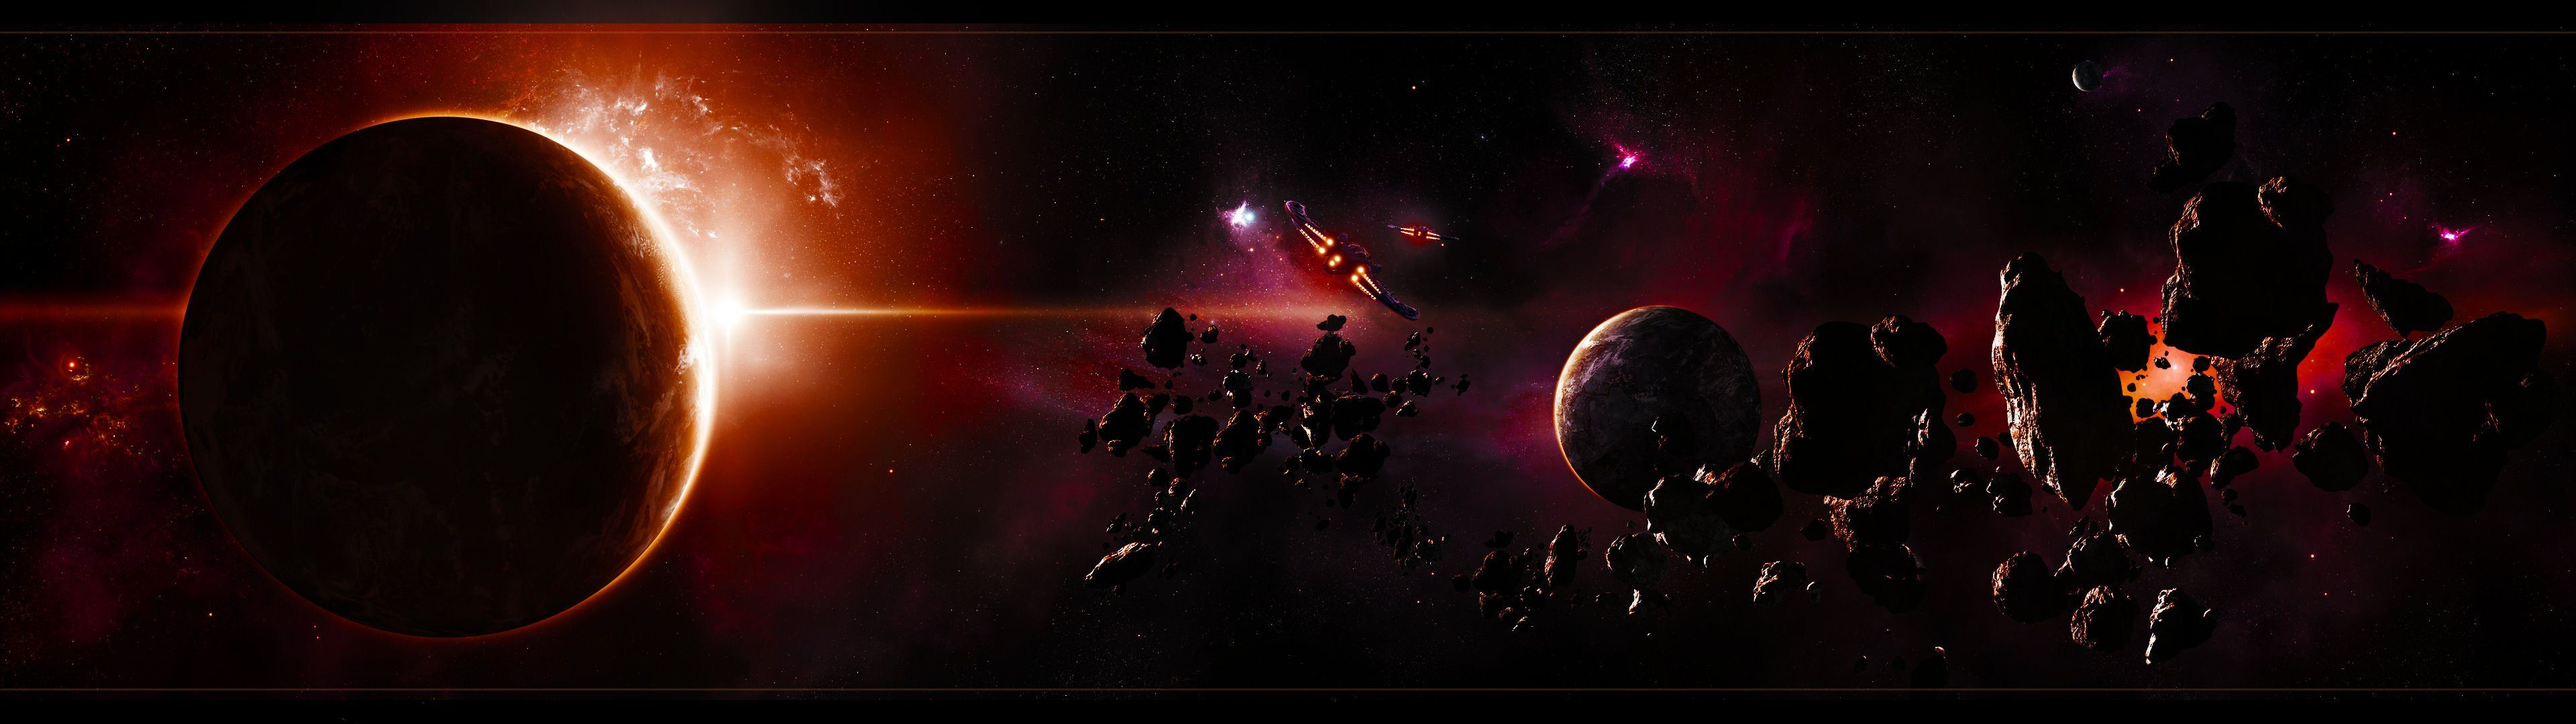 3840x1080 Wallpaper Space Wallpapersafari 3840x1080 Wallpaper Wallpaper Space Planets Wallpaper